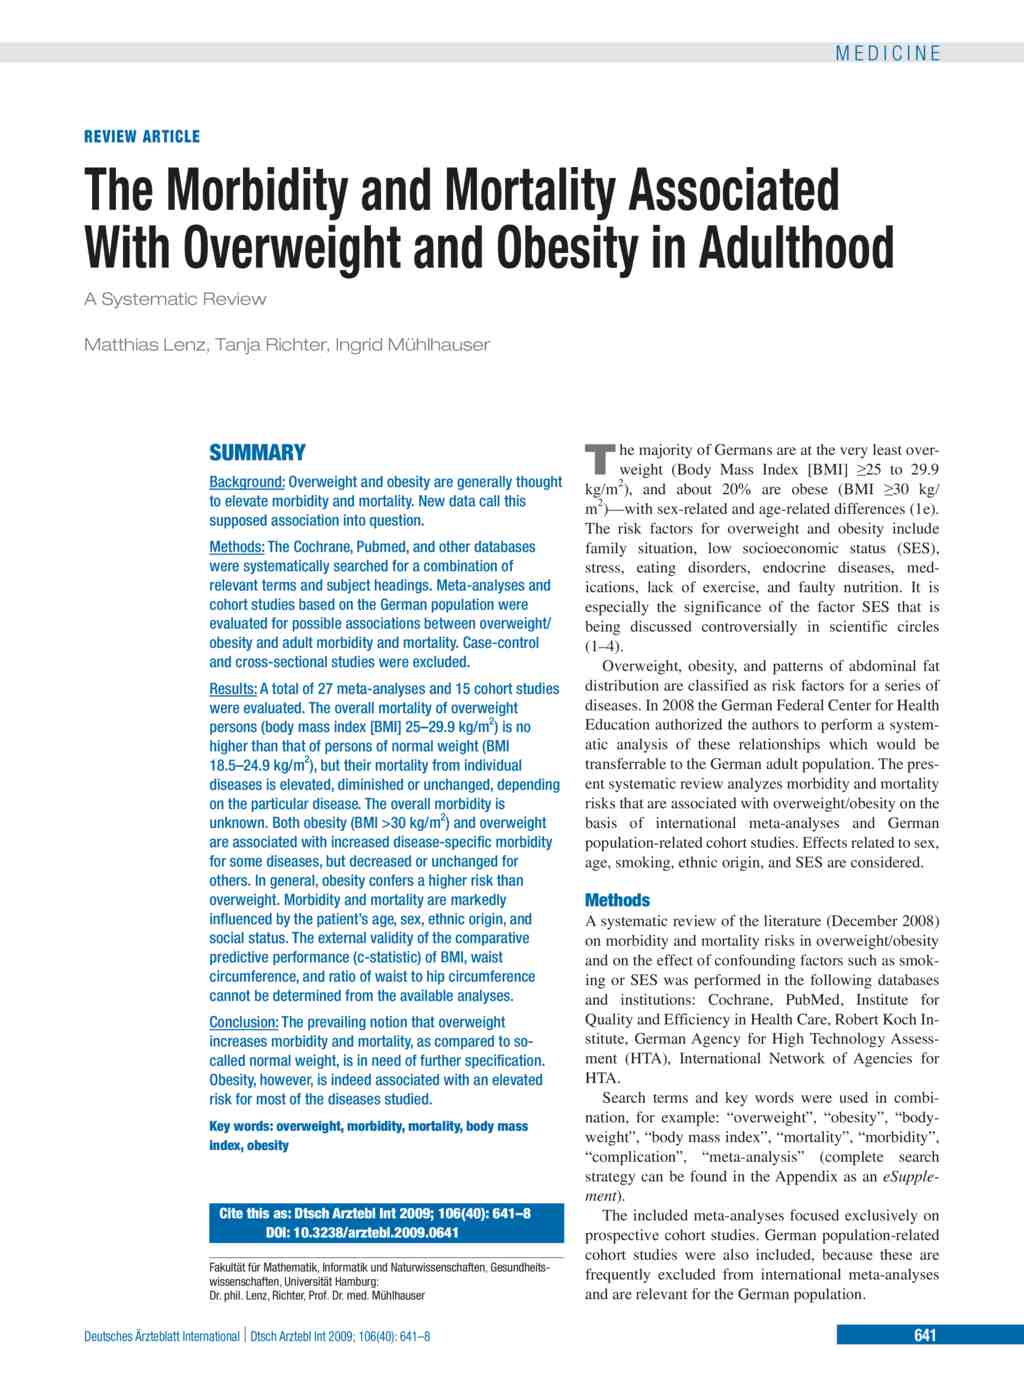 the morbidity and mortality associated with overweight and obesity